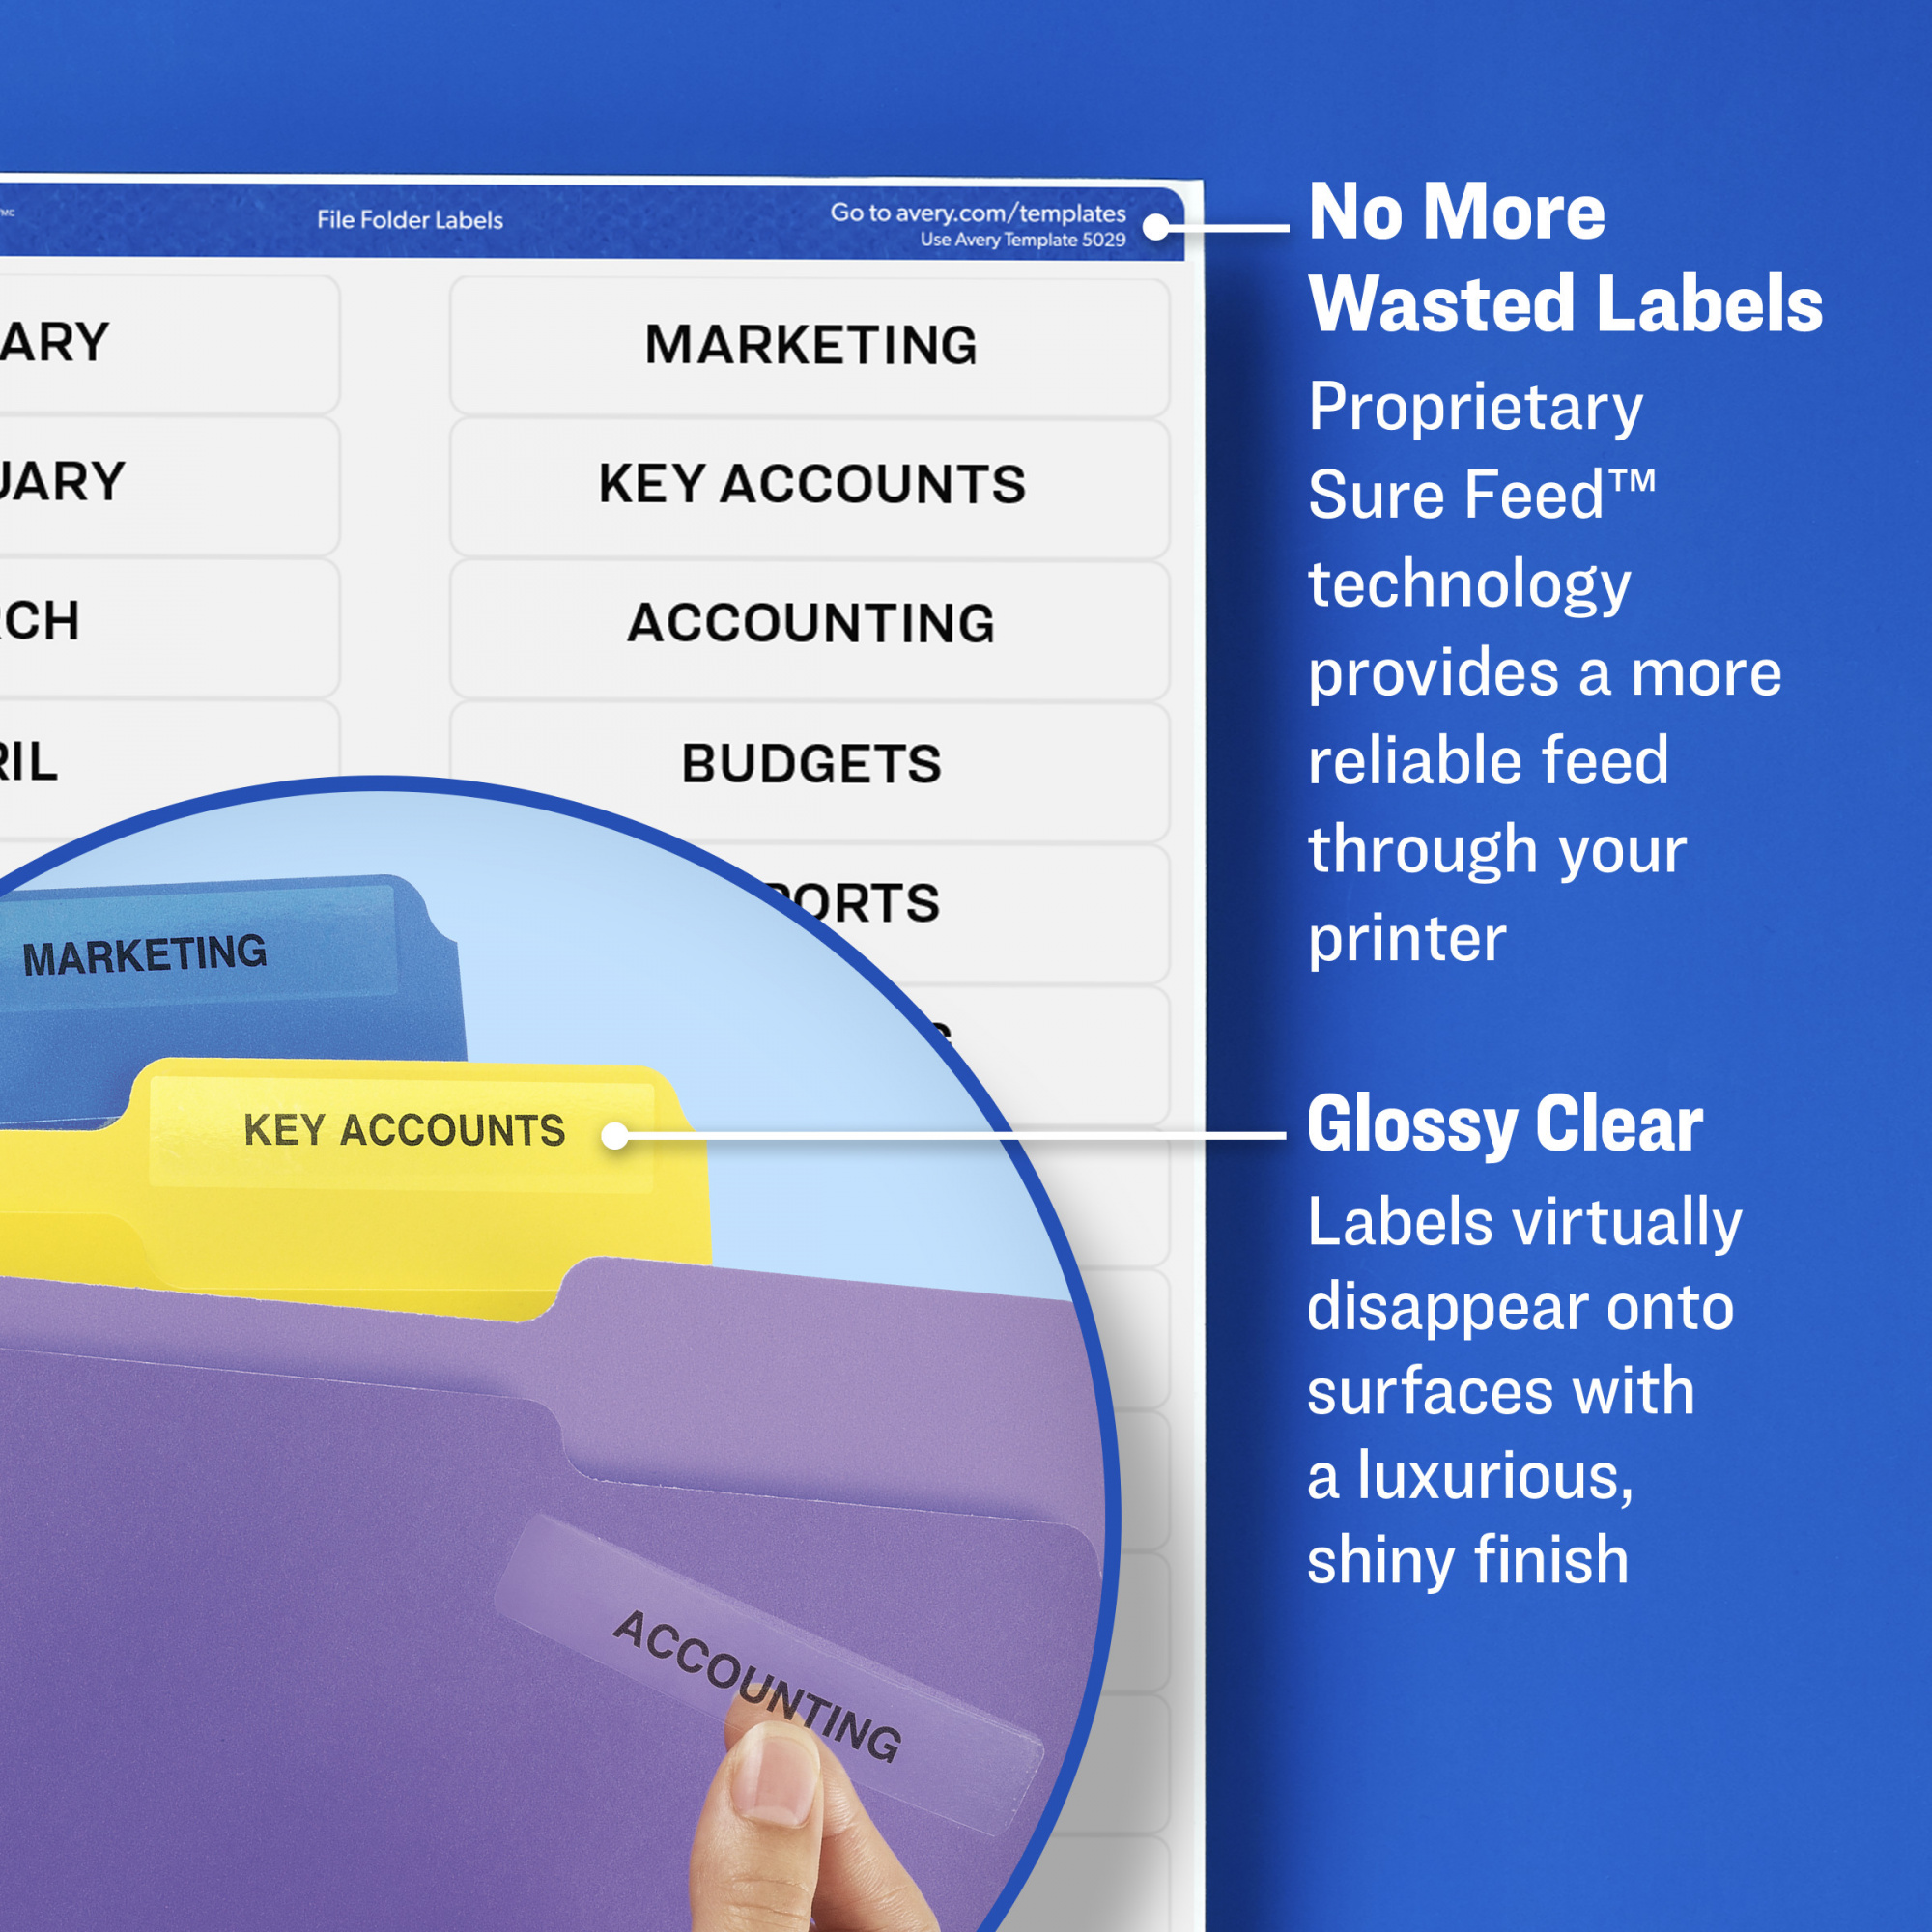 """Avery File Folder Labels, Sure Feed Technology, Permanent Adhesive, Glossy  Clear, 2/3"""" x 3-7/16"""", 450 Labels"""